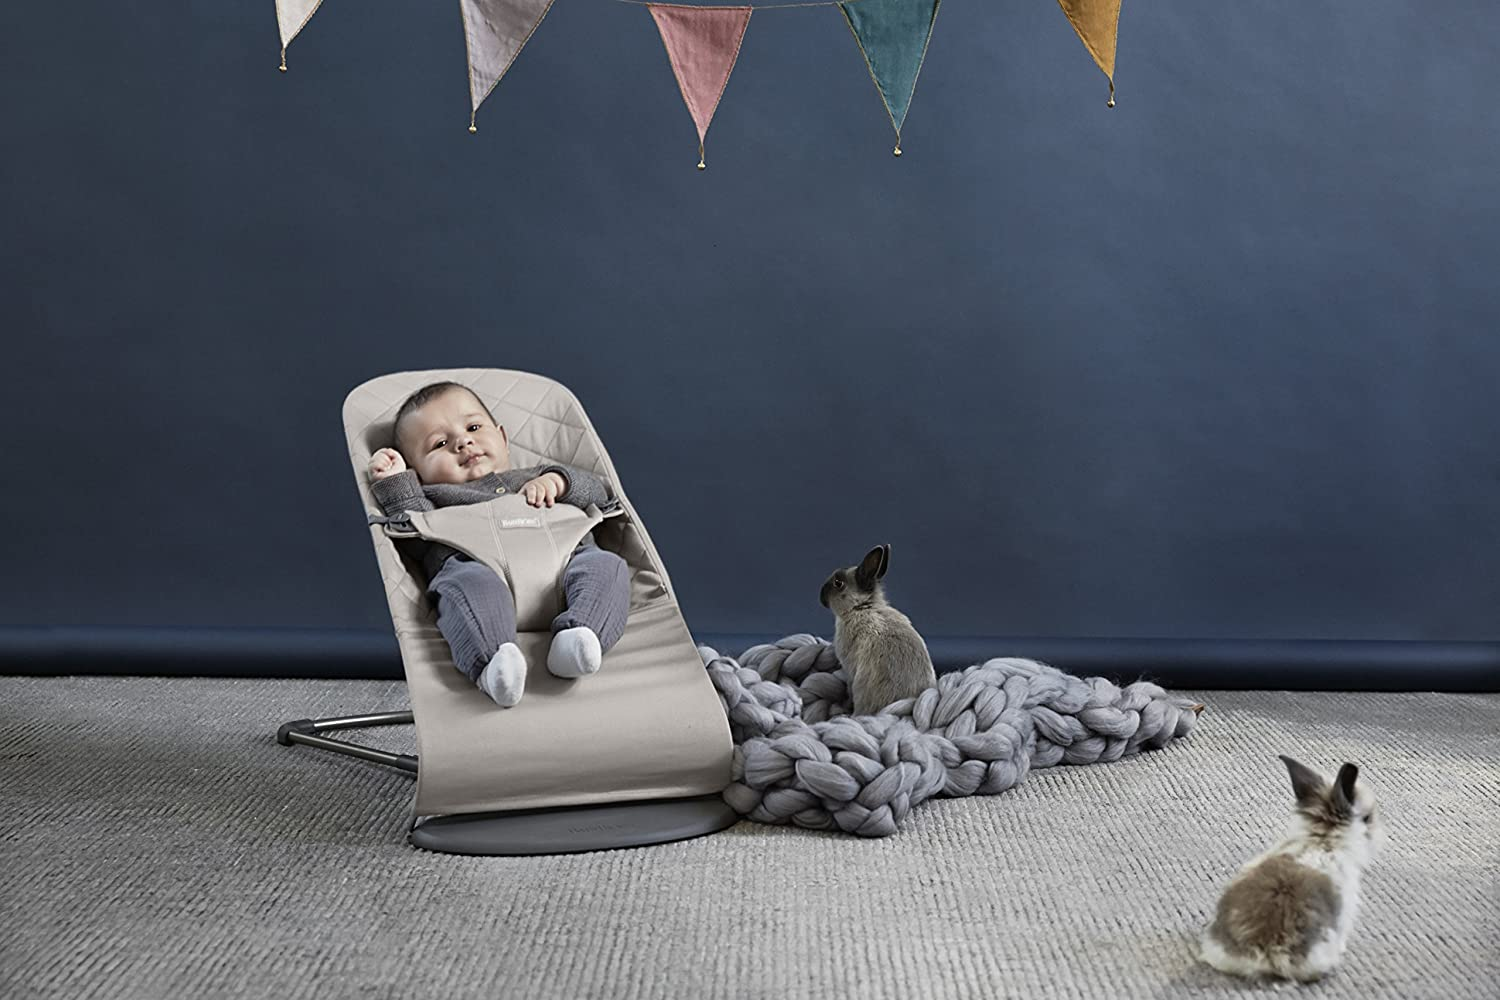 Cotton Sand Gray BabyBjorn Fabric Seat for Bouncer